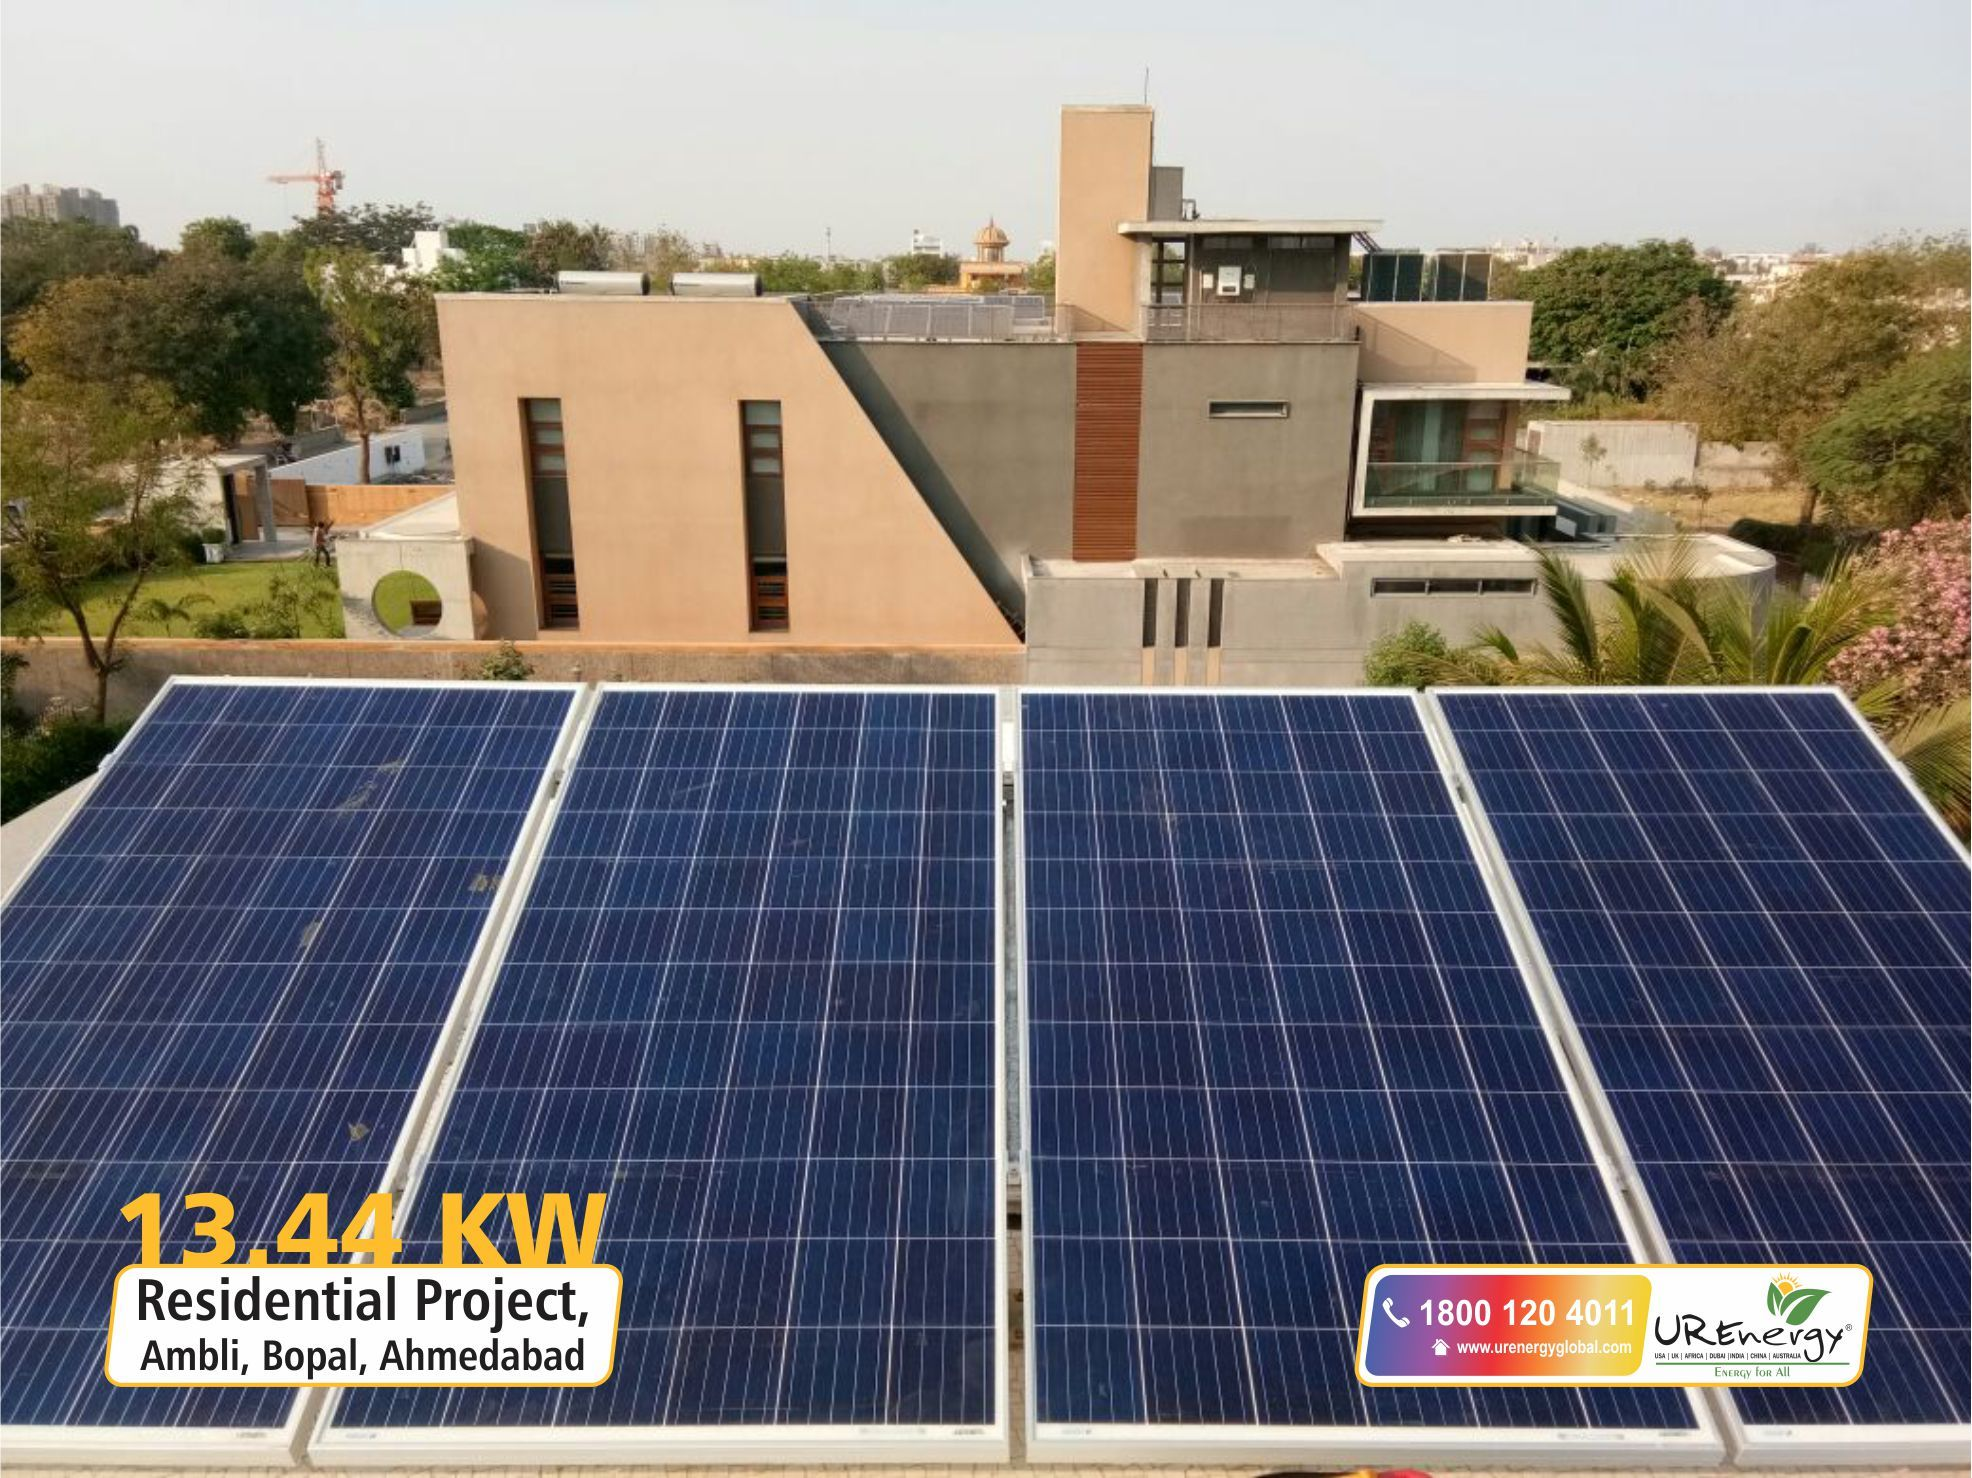 Rooftop Solar Panel Inverters Water Pump Solar Epc Gujarat India U R Energy Solar Solar House Solar Panels